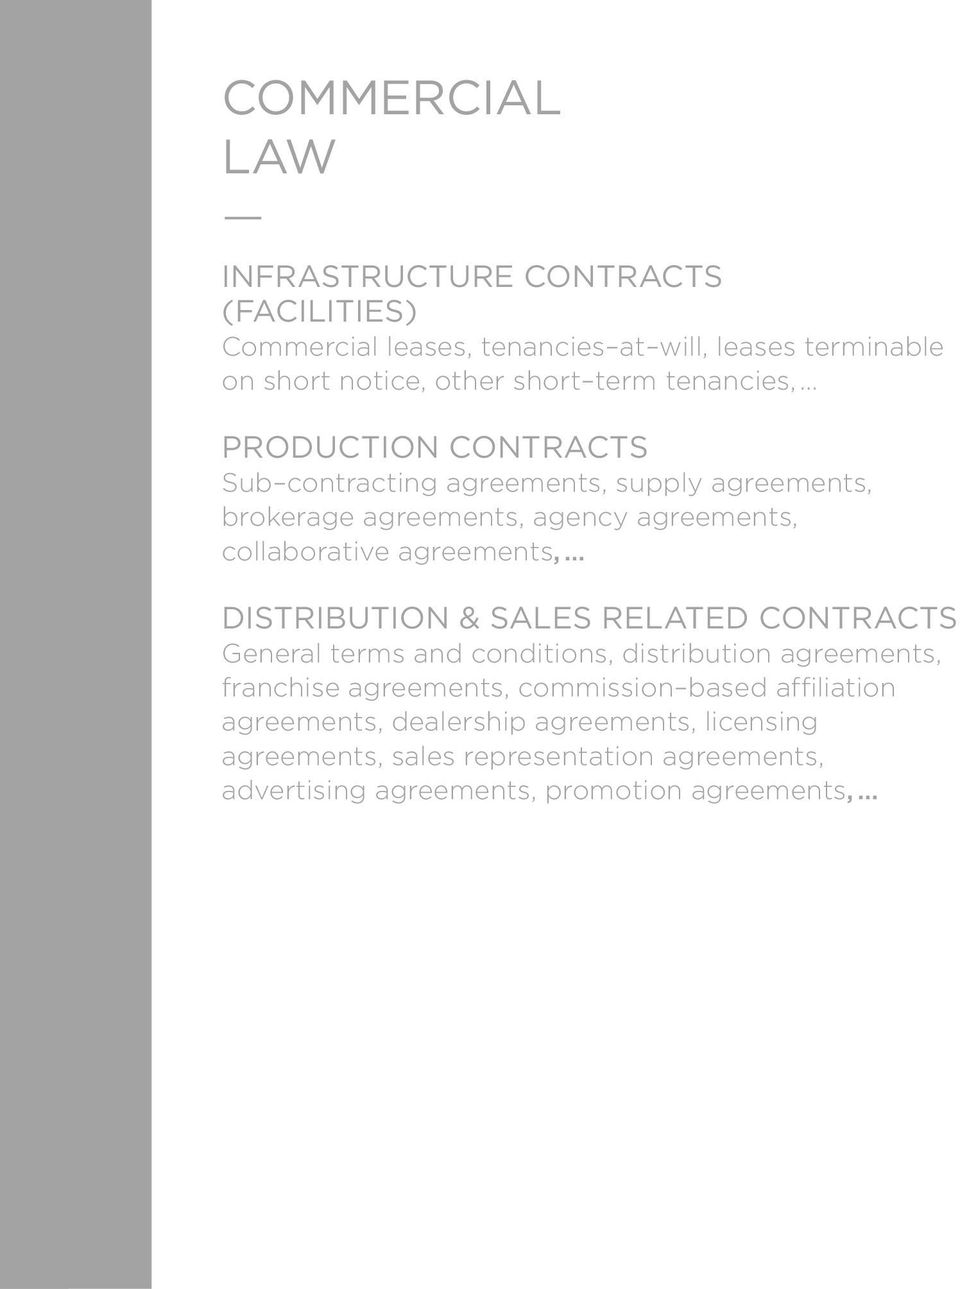 agreements, DISTRIBUTION & SALES RELATED CONTRACTS General terms and conditions, distribution agreements, franchise agreements, commission